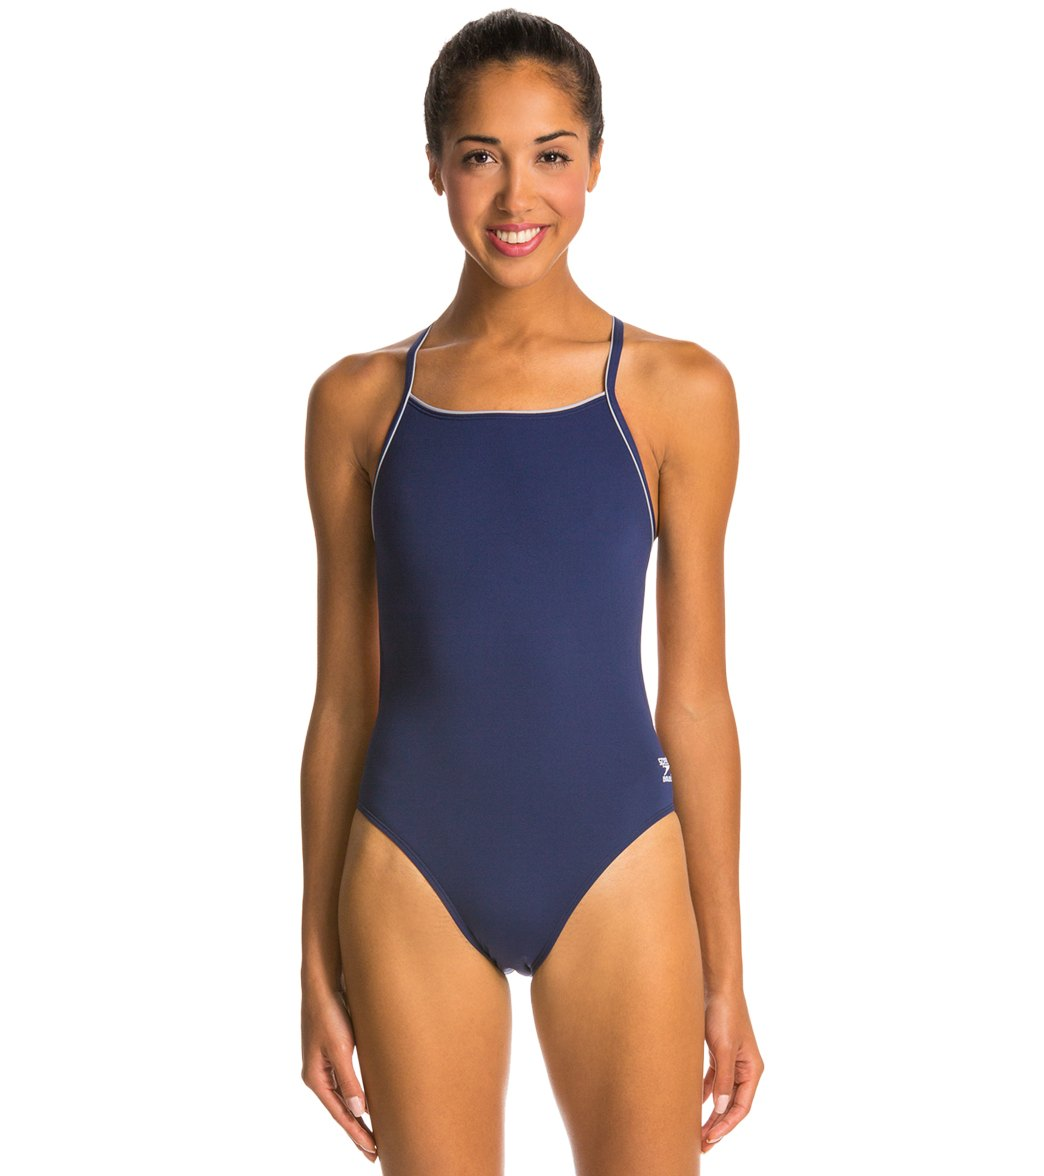 8a1a03905135f Speedo Solid Endurance + Thin Strap Swimsuit at SwimOutlet.com - Free  Shipping